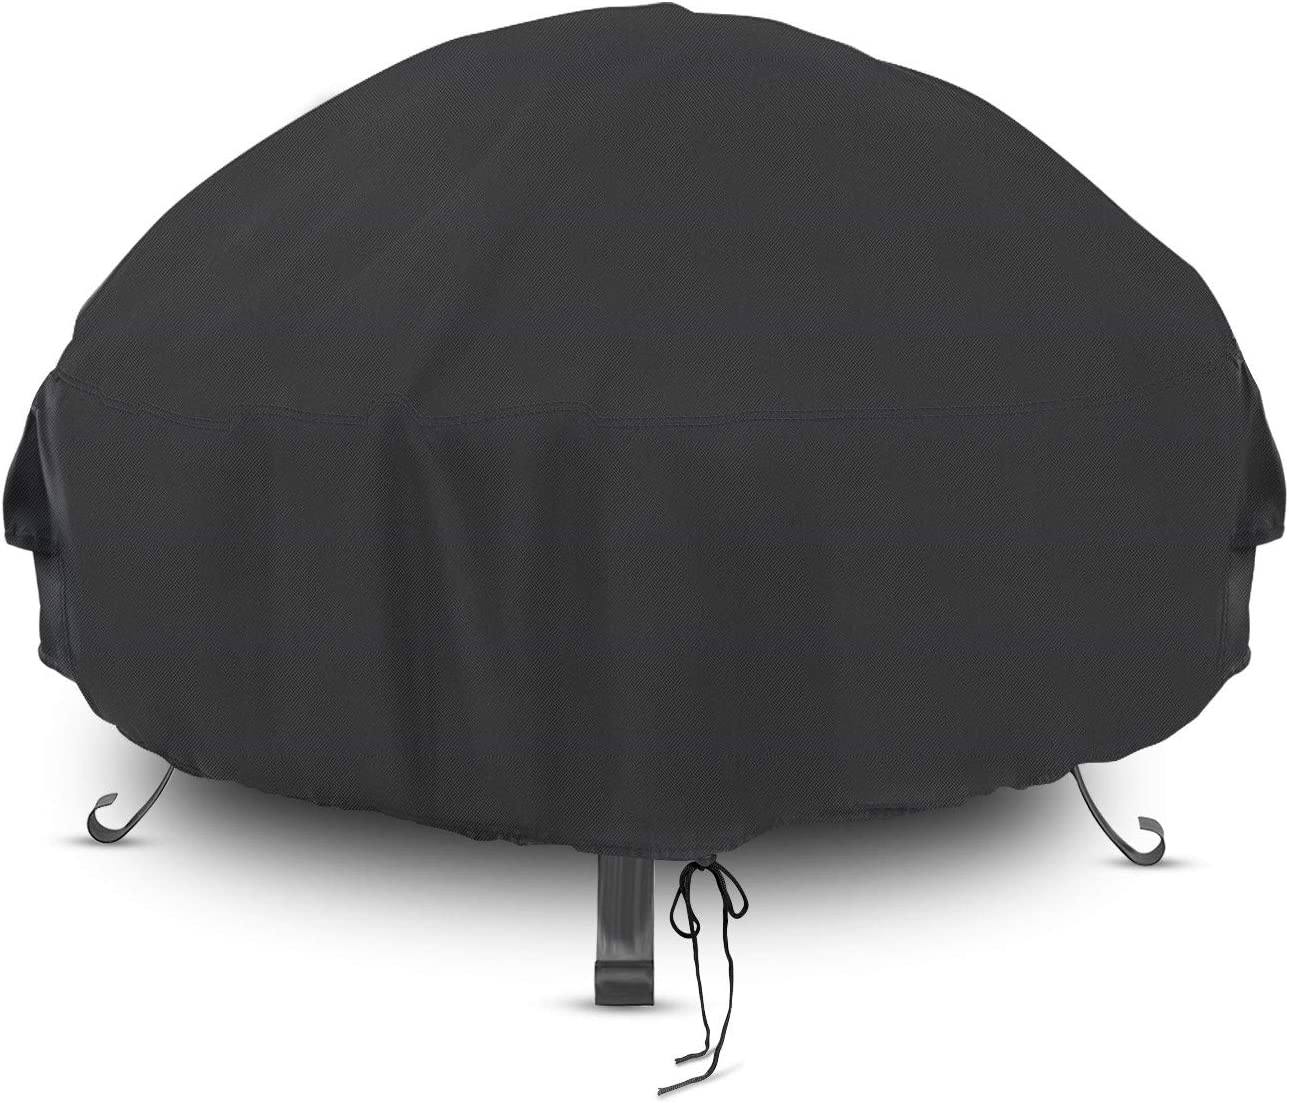 Iptienda Round Outdoor Fire Pit Cover, Waterproof Anti-UV Round Patio Fire Bowl Cover, Outdoors Furniture Grill BBQ Firepit Cover (36 inch Black)